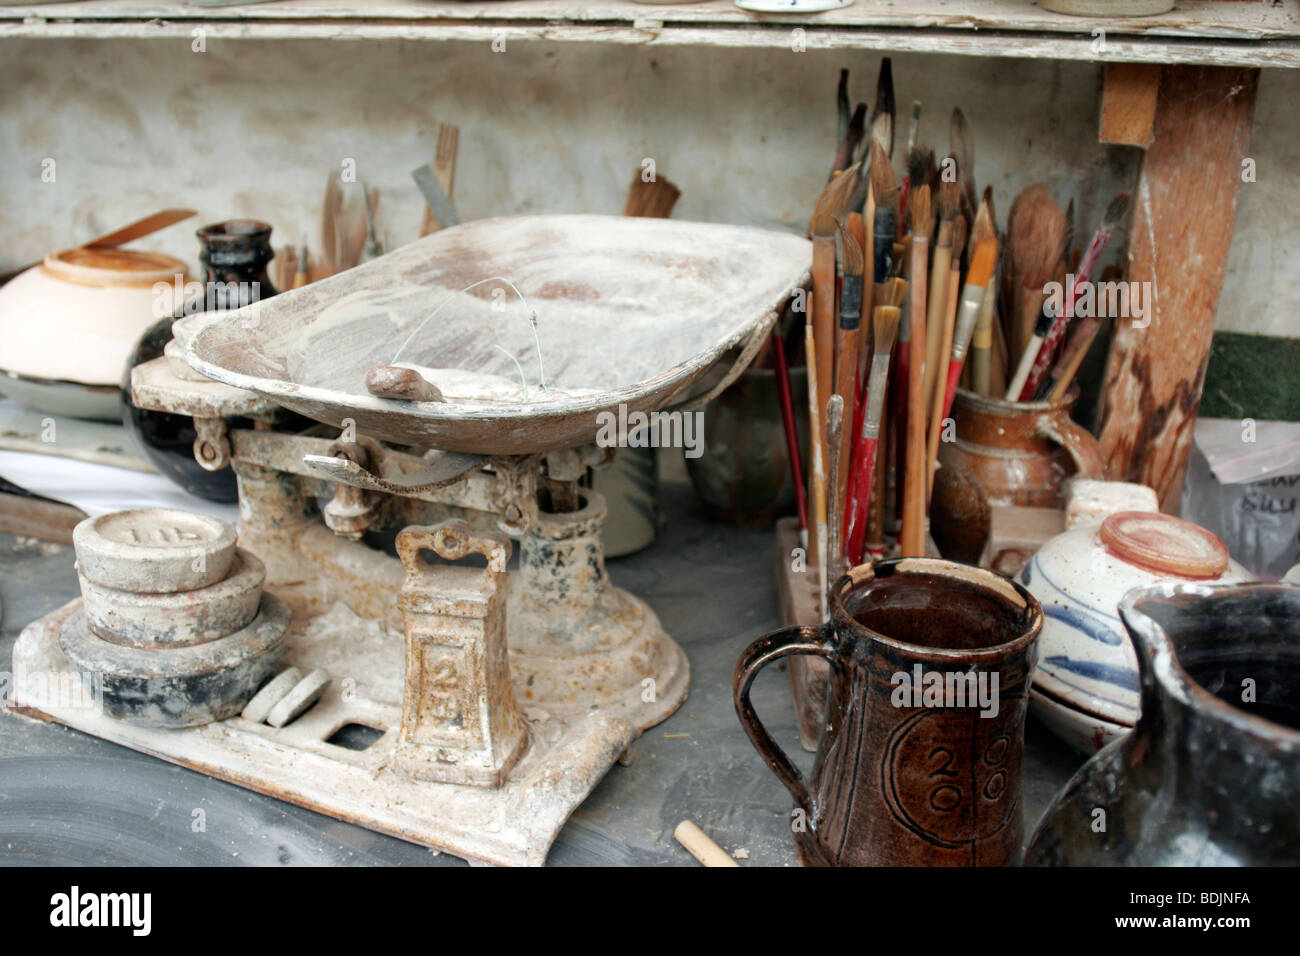 A potter's tools including weighing scales, brushes and examples of work - Stock Image